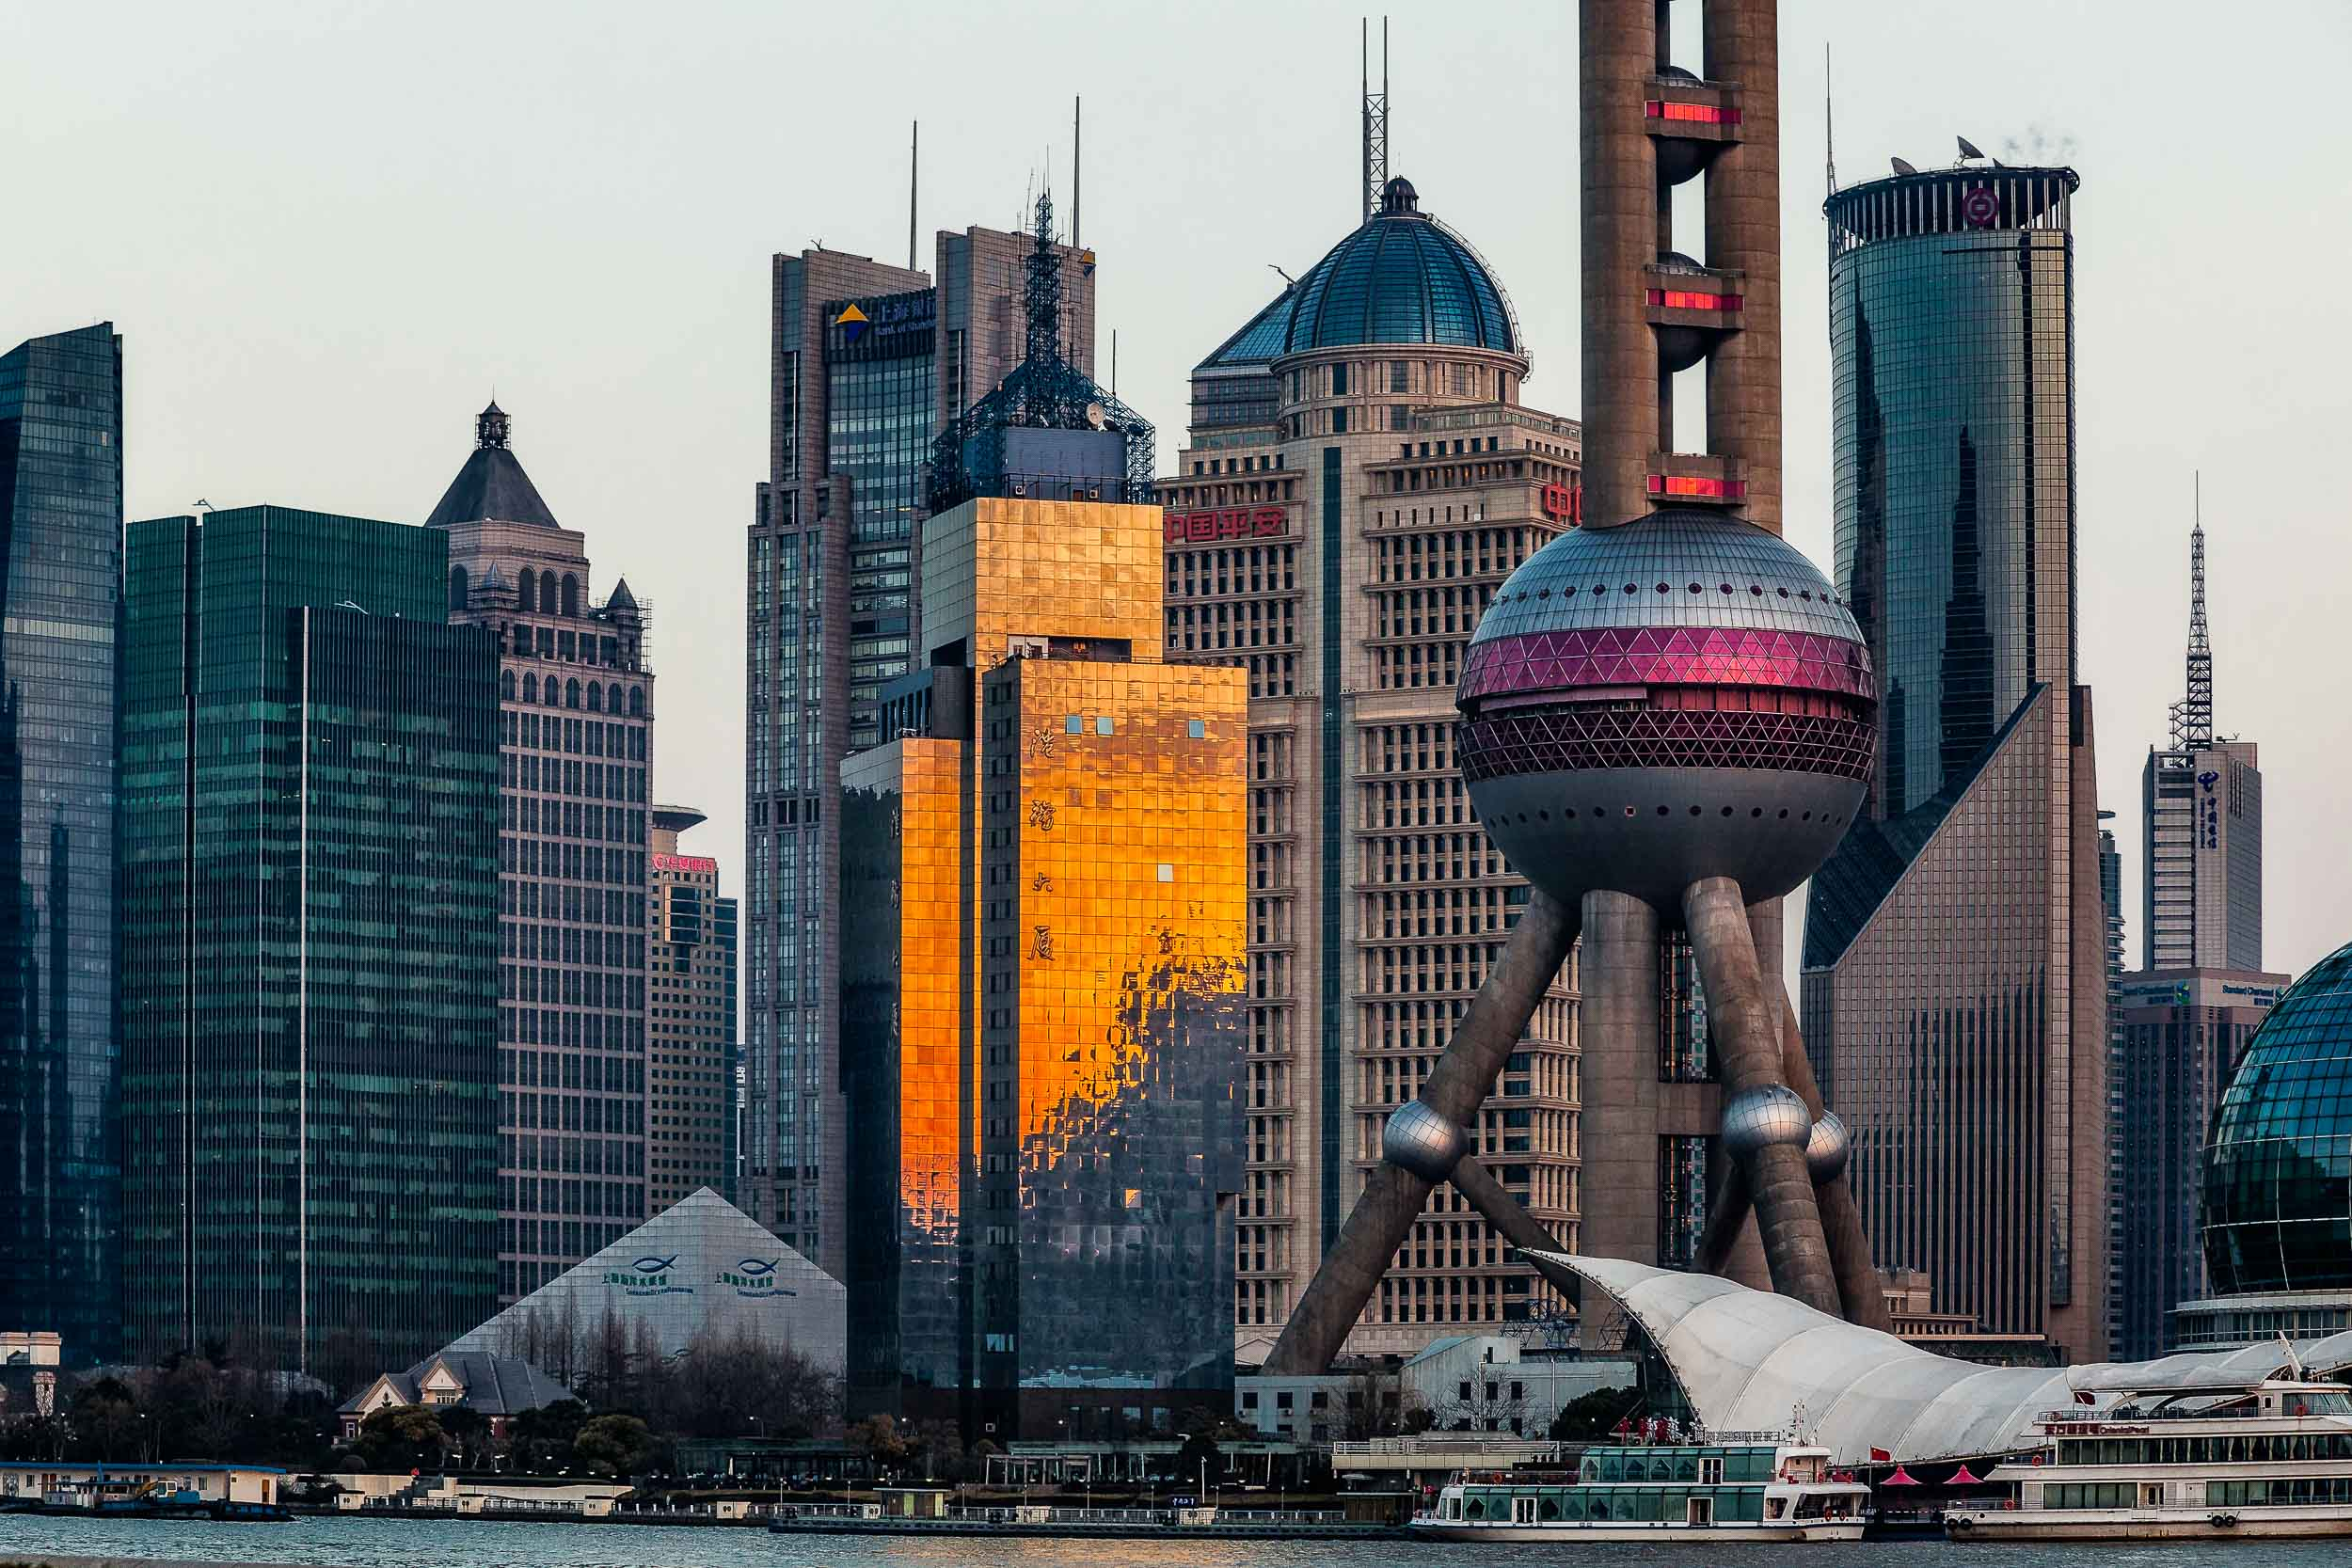 A view of    Pudong    from across the    Huangpu River    on The Bund in    Shanghai, China   .